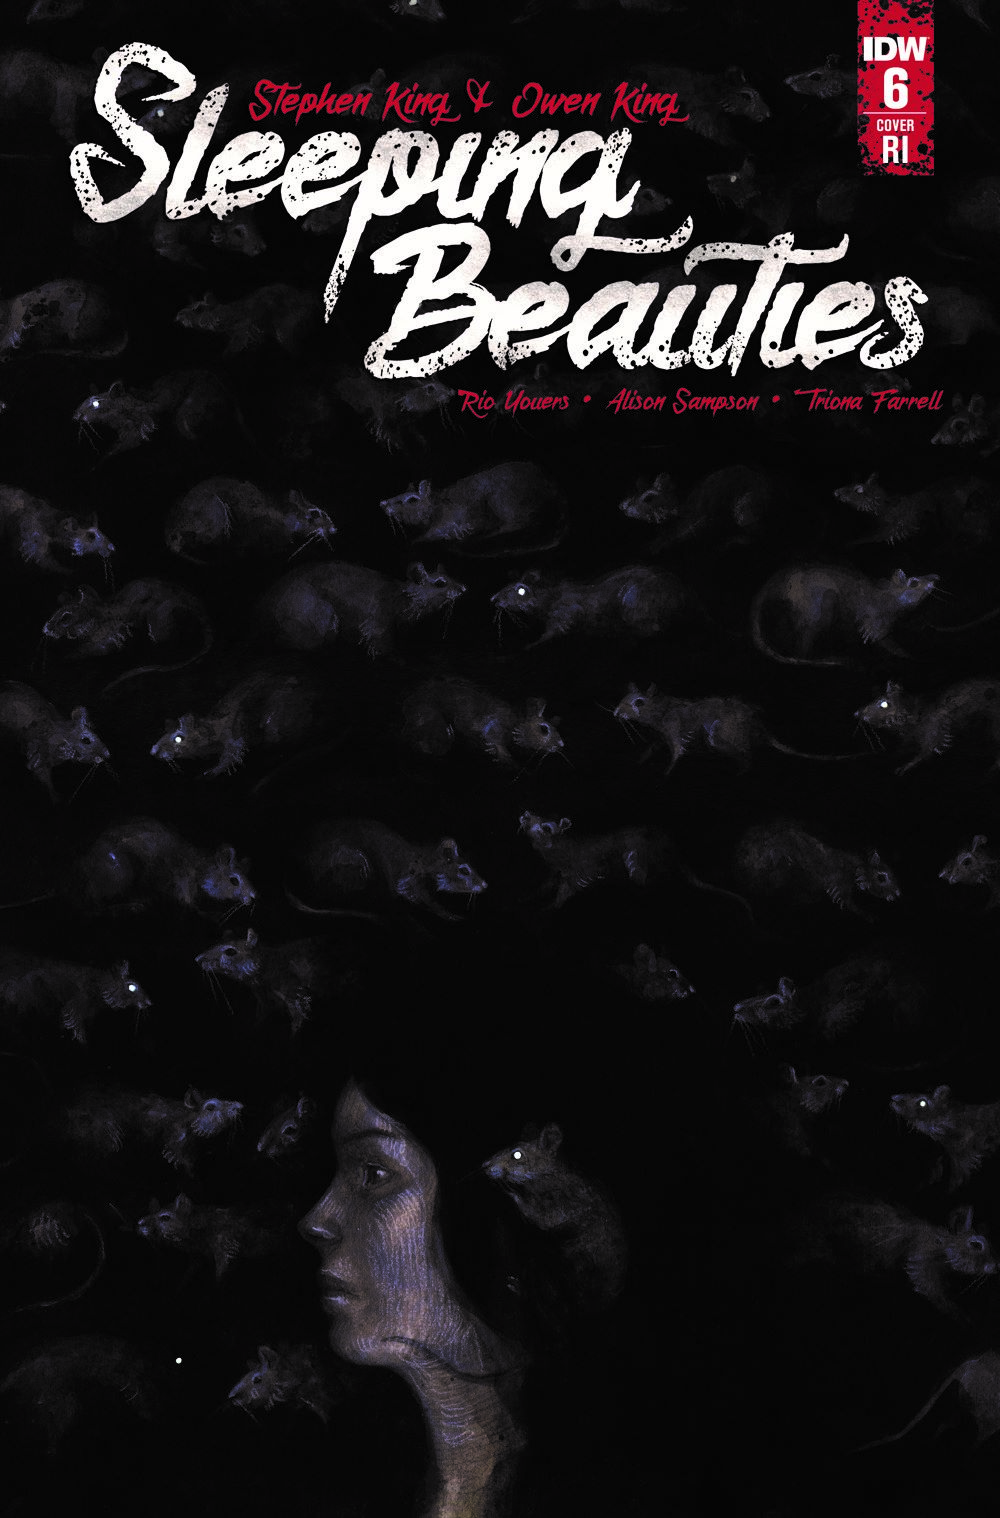 SleepingBeauties_06_CVR_RIa-2 ComicList: IDW Publishing New Releases for 05/19/2021